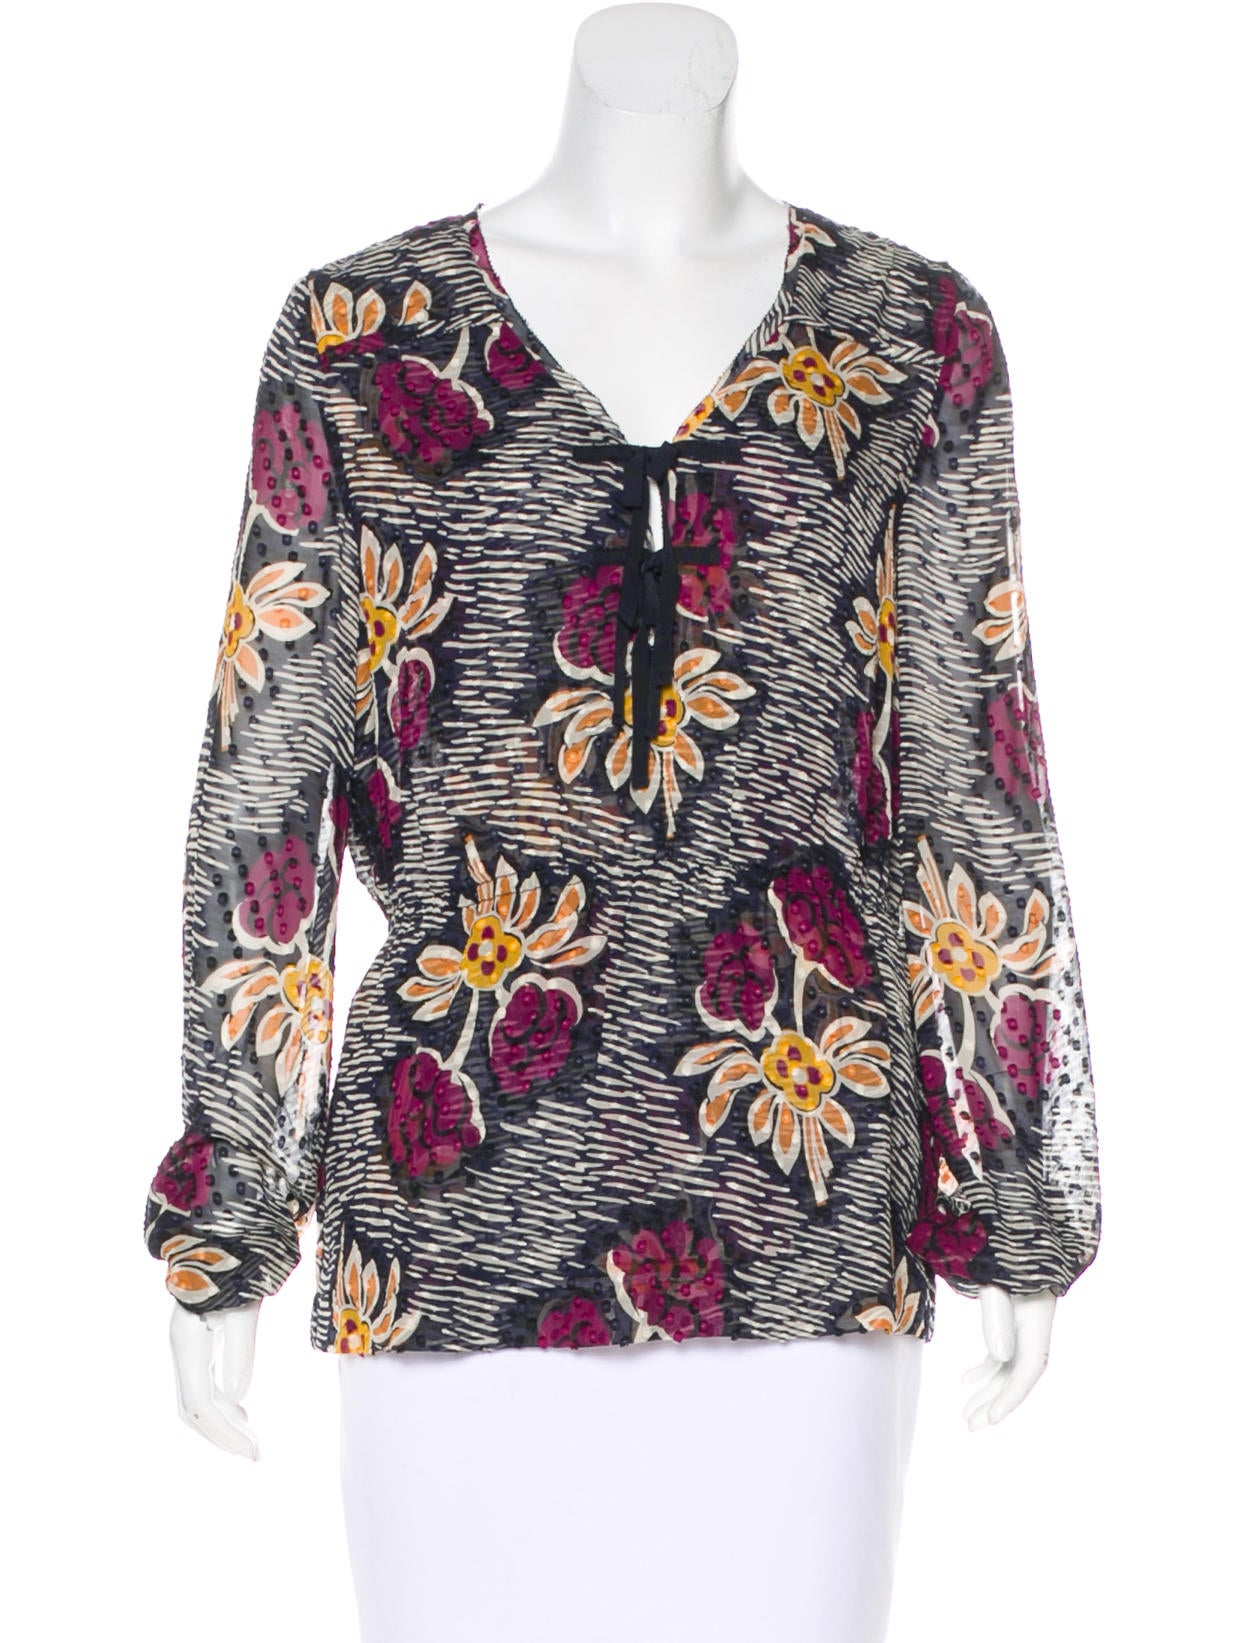 be8642a92893 Tory Burch Floral Silk Blouse - Clothing - WTO123695